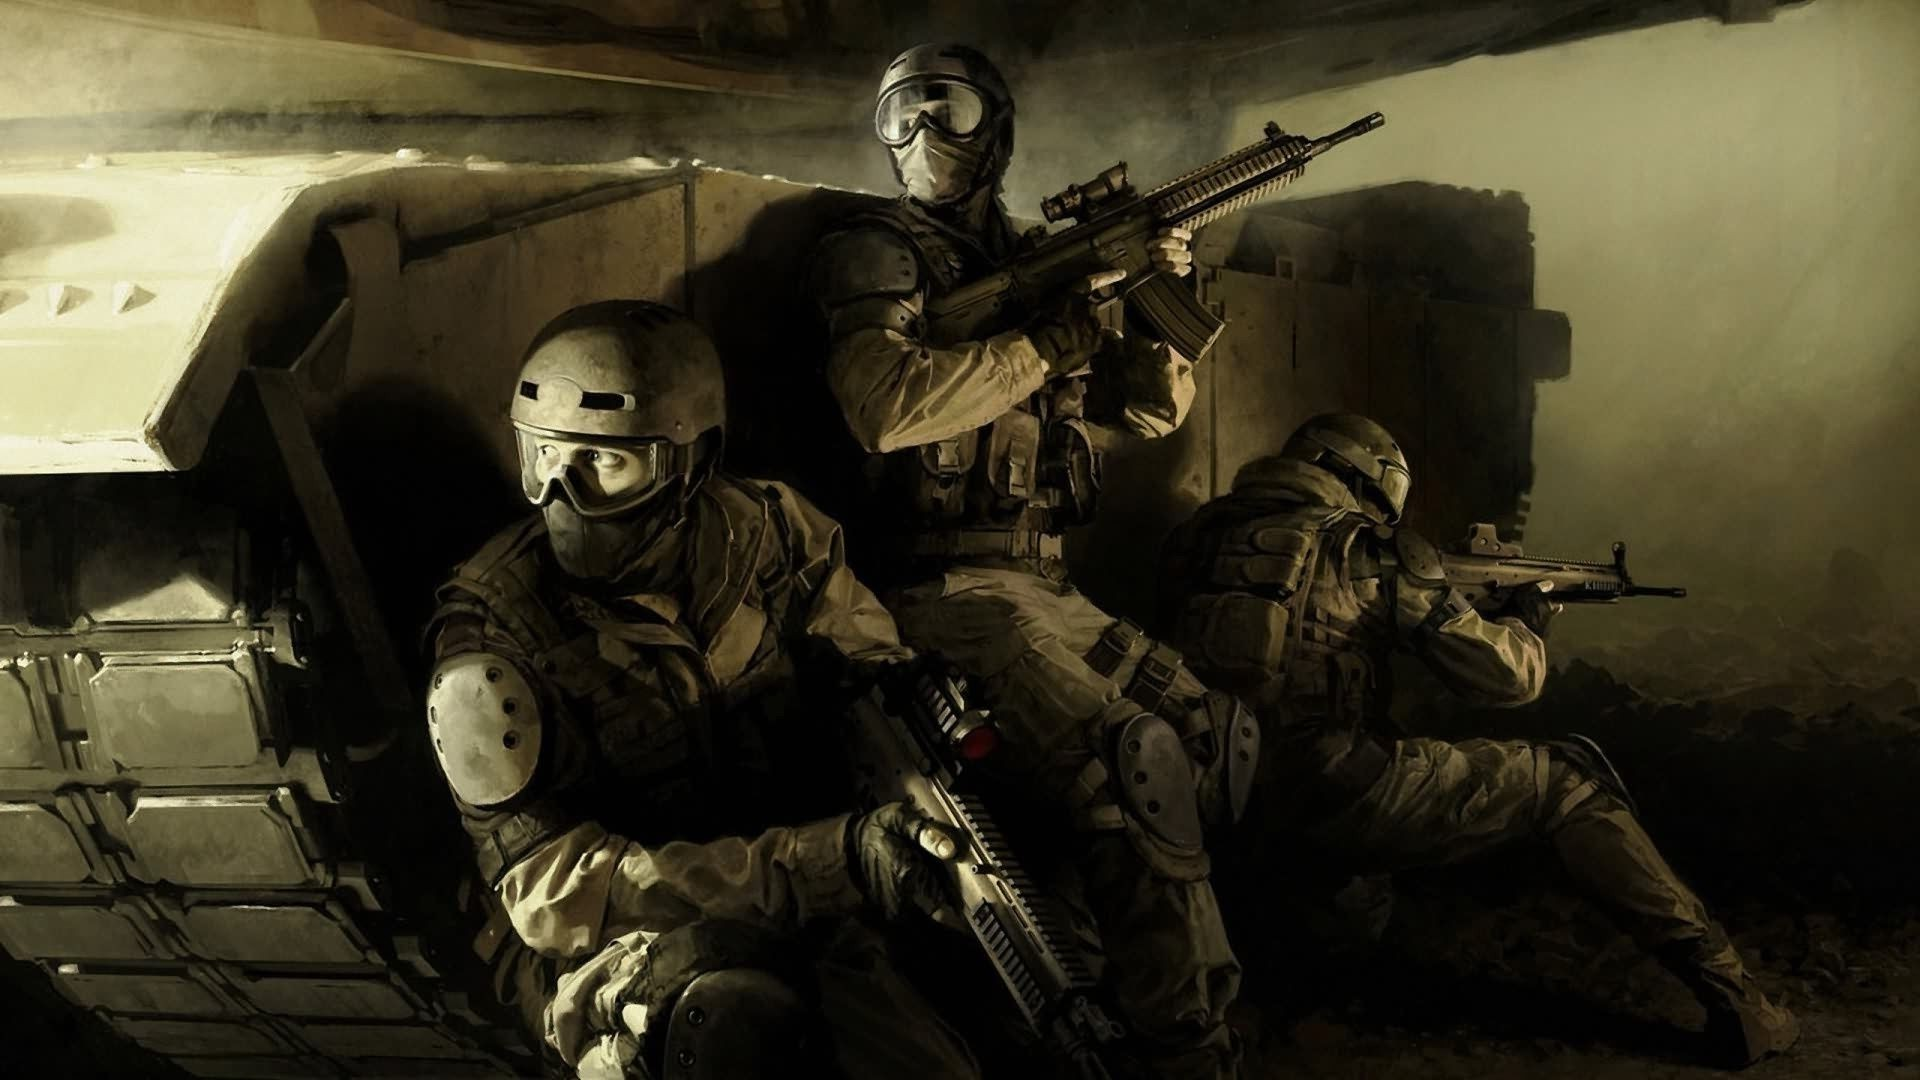 42 cool army wallpapers in hd for free download - HD 1920×1080